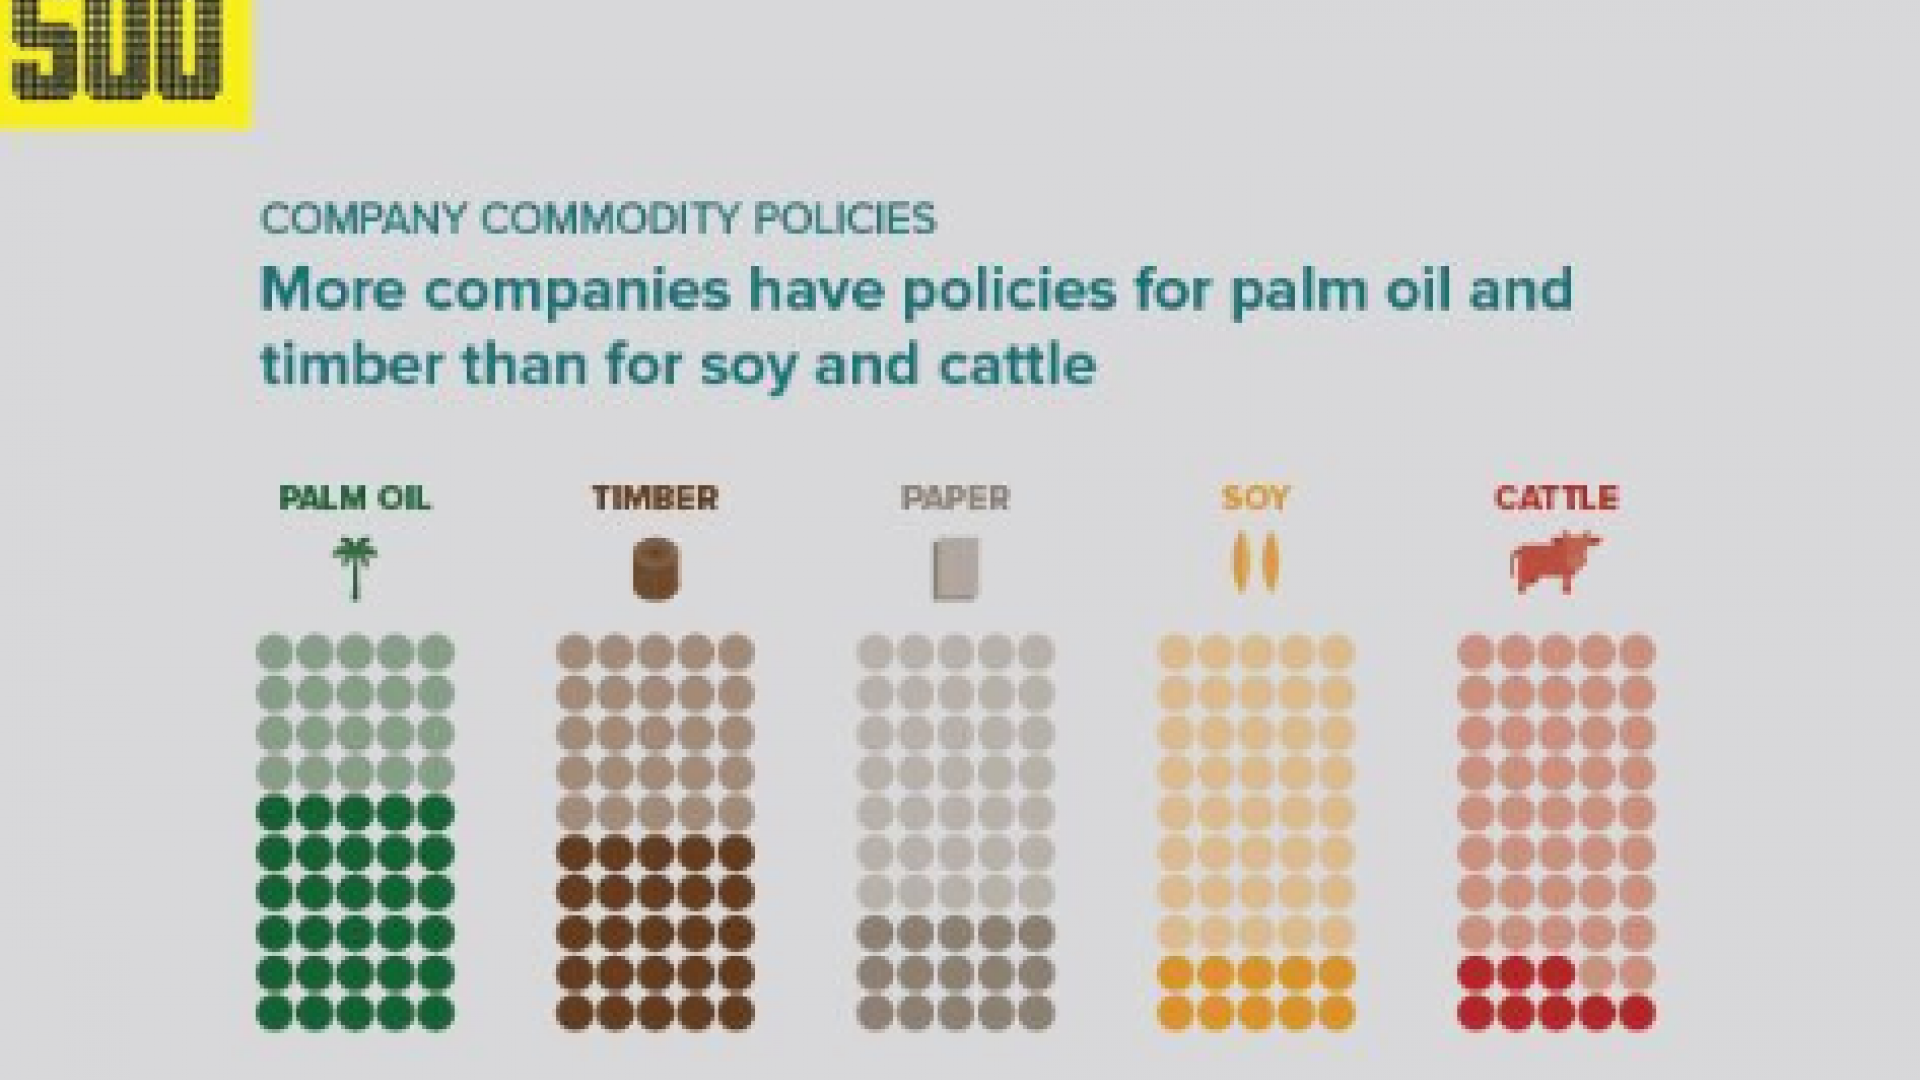 Graph shows that more companies have policies for timber and palm oil than for cattle and soy.